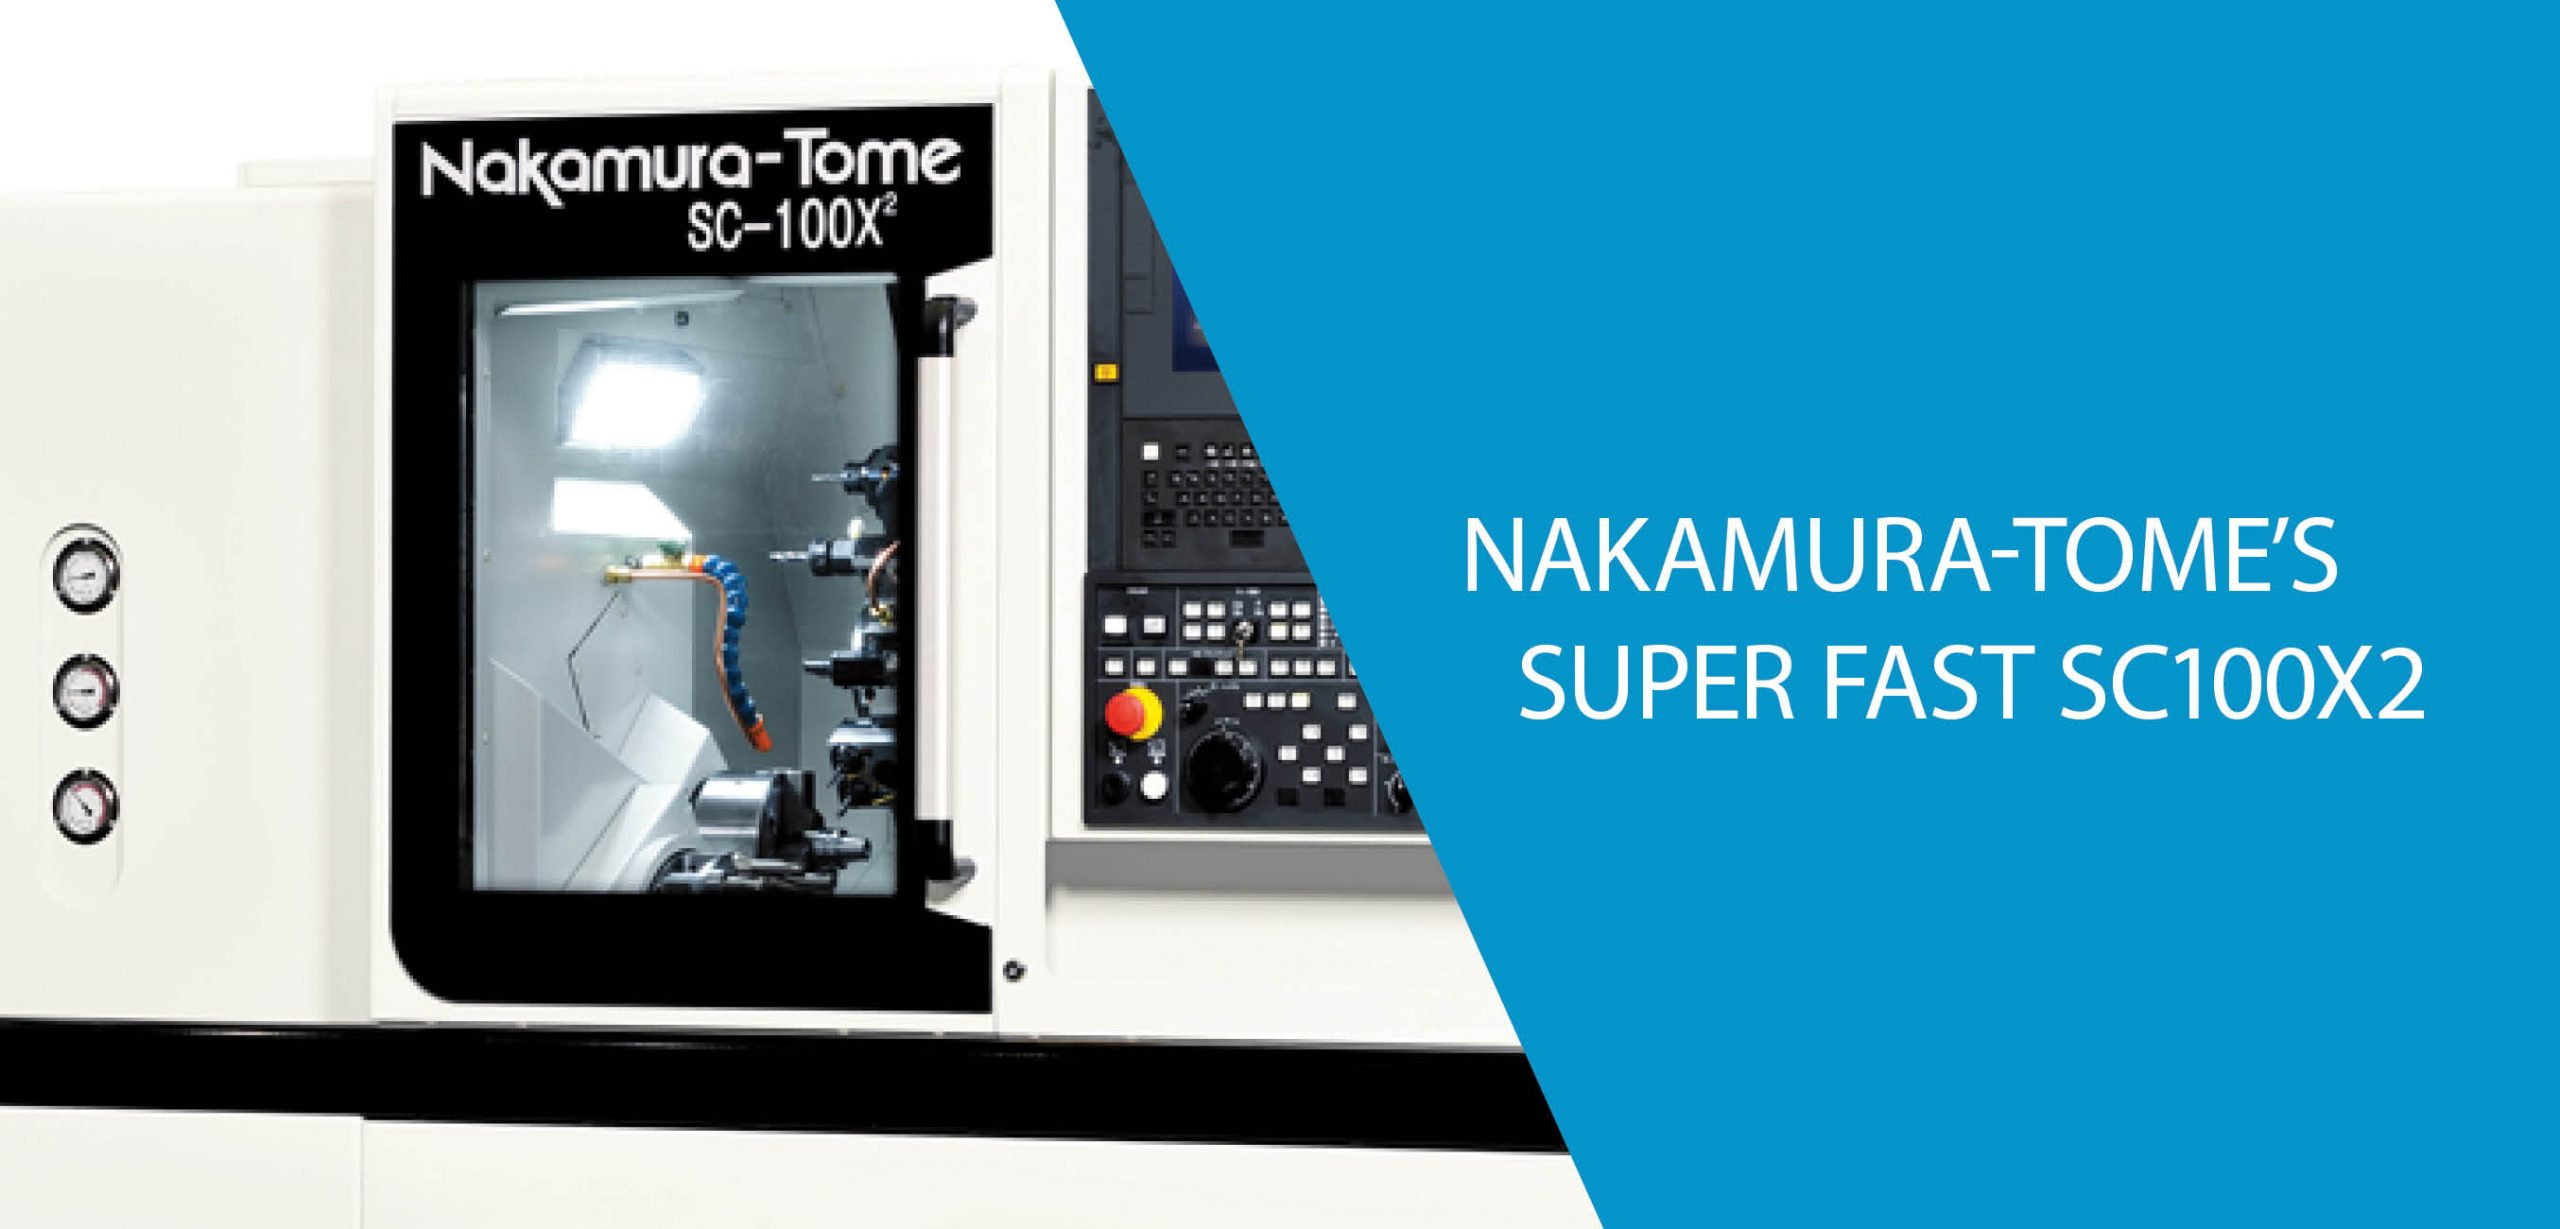 Nakamura's SC100X2 High Repetition, High Precision Machine This single turret, high precision, compact technology from Nakamura-Tome is ideal for precision machining. With fast programming and set-up this machine is easy to operate. Ideal for machining medical, construction communication components and general engineering. SC-100X2 is 41% faster than SC-100, reduce your cycle times. X-axis and Z-axis are standard on R-spindle. Superimposed cycle is simultaneous machining through overlapping control between L-spindle and R-spindle. Watch the Spindle in Action Download the SC100X2 Brochure. Read more about Nakamura-Tome Horizontal Lathes. [activecampaign form=202]